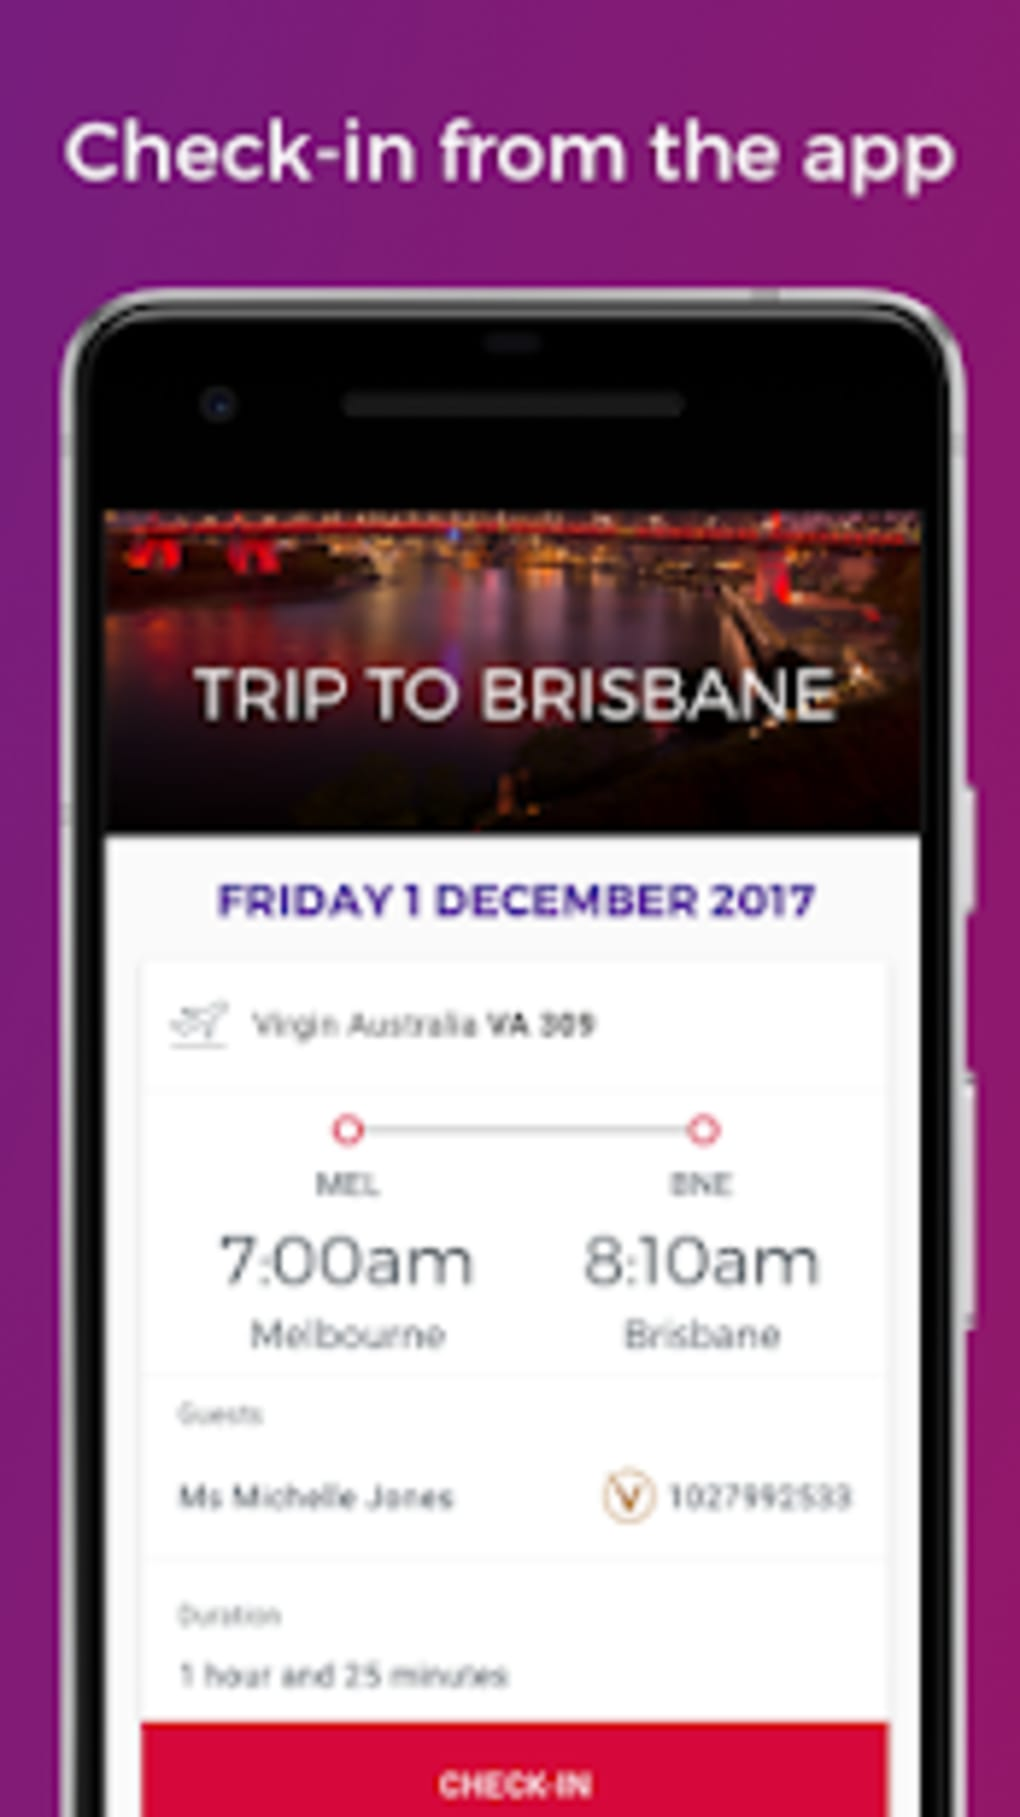 Virgin Australia for Android - Download